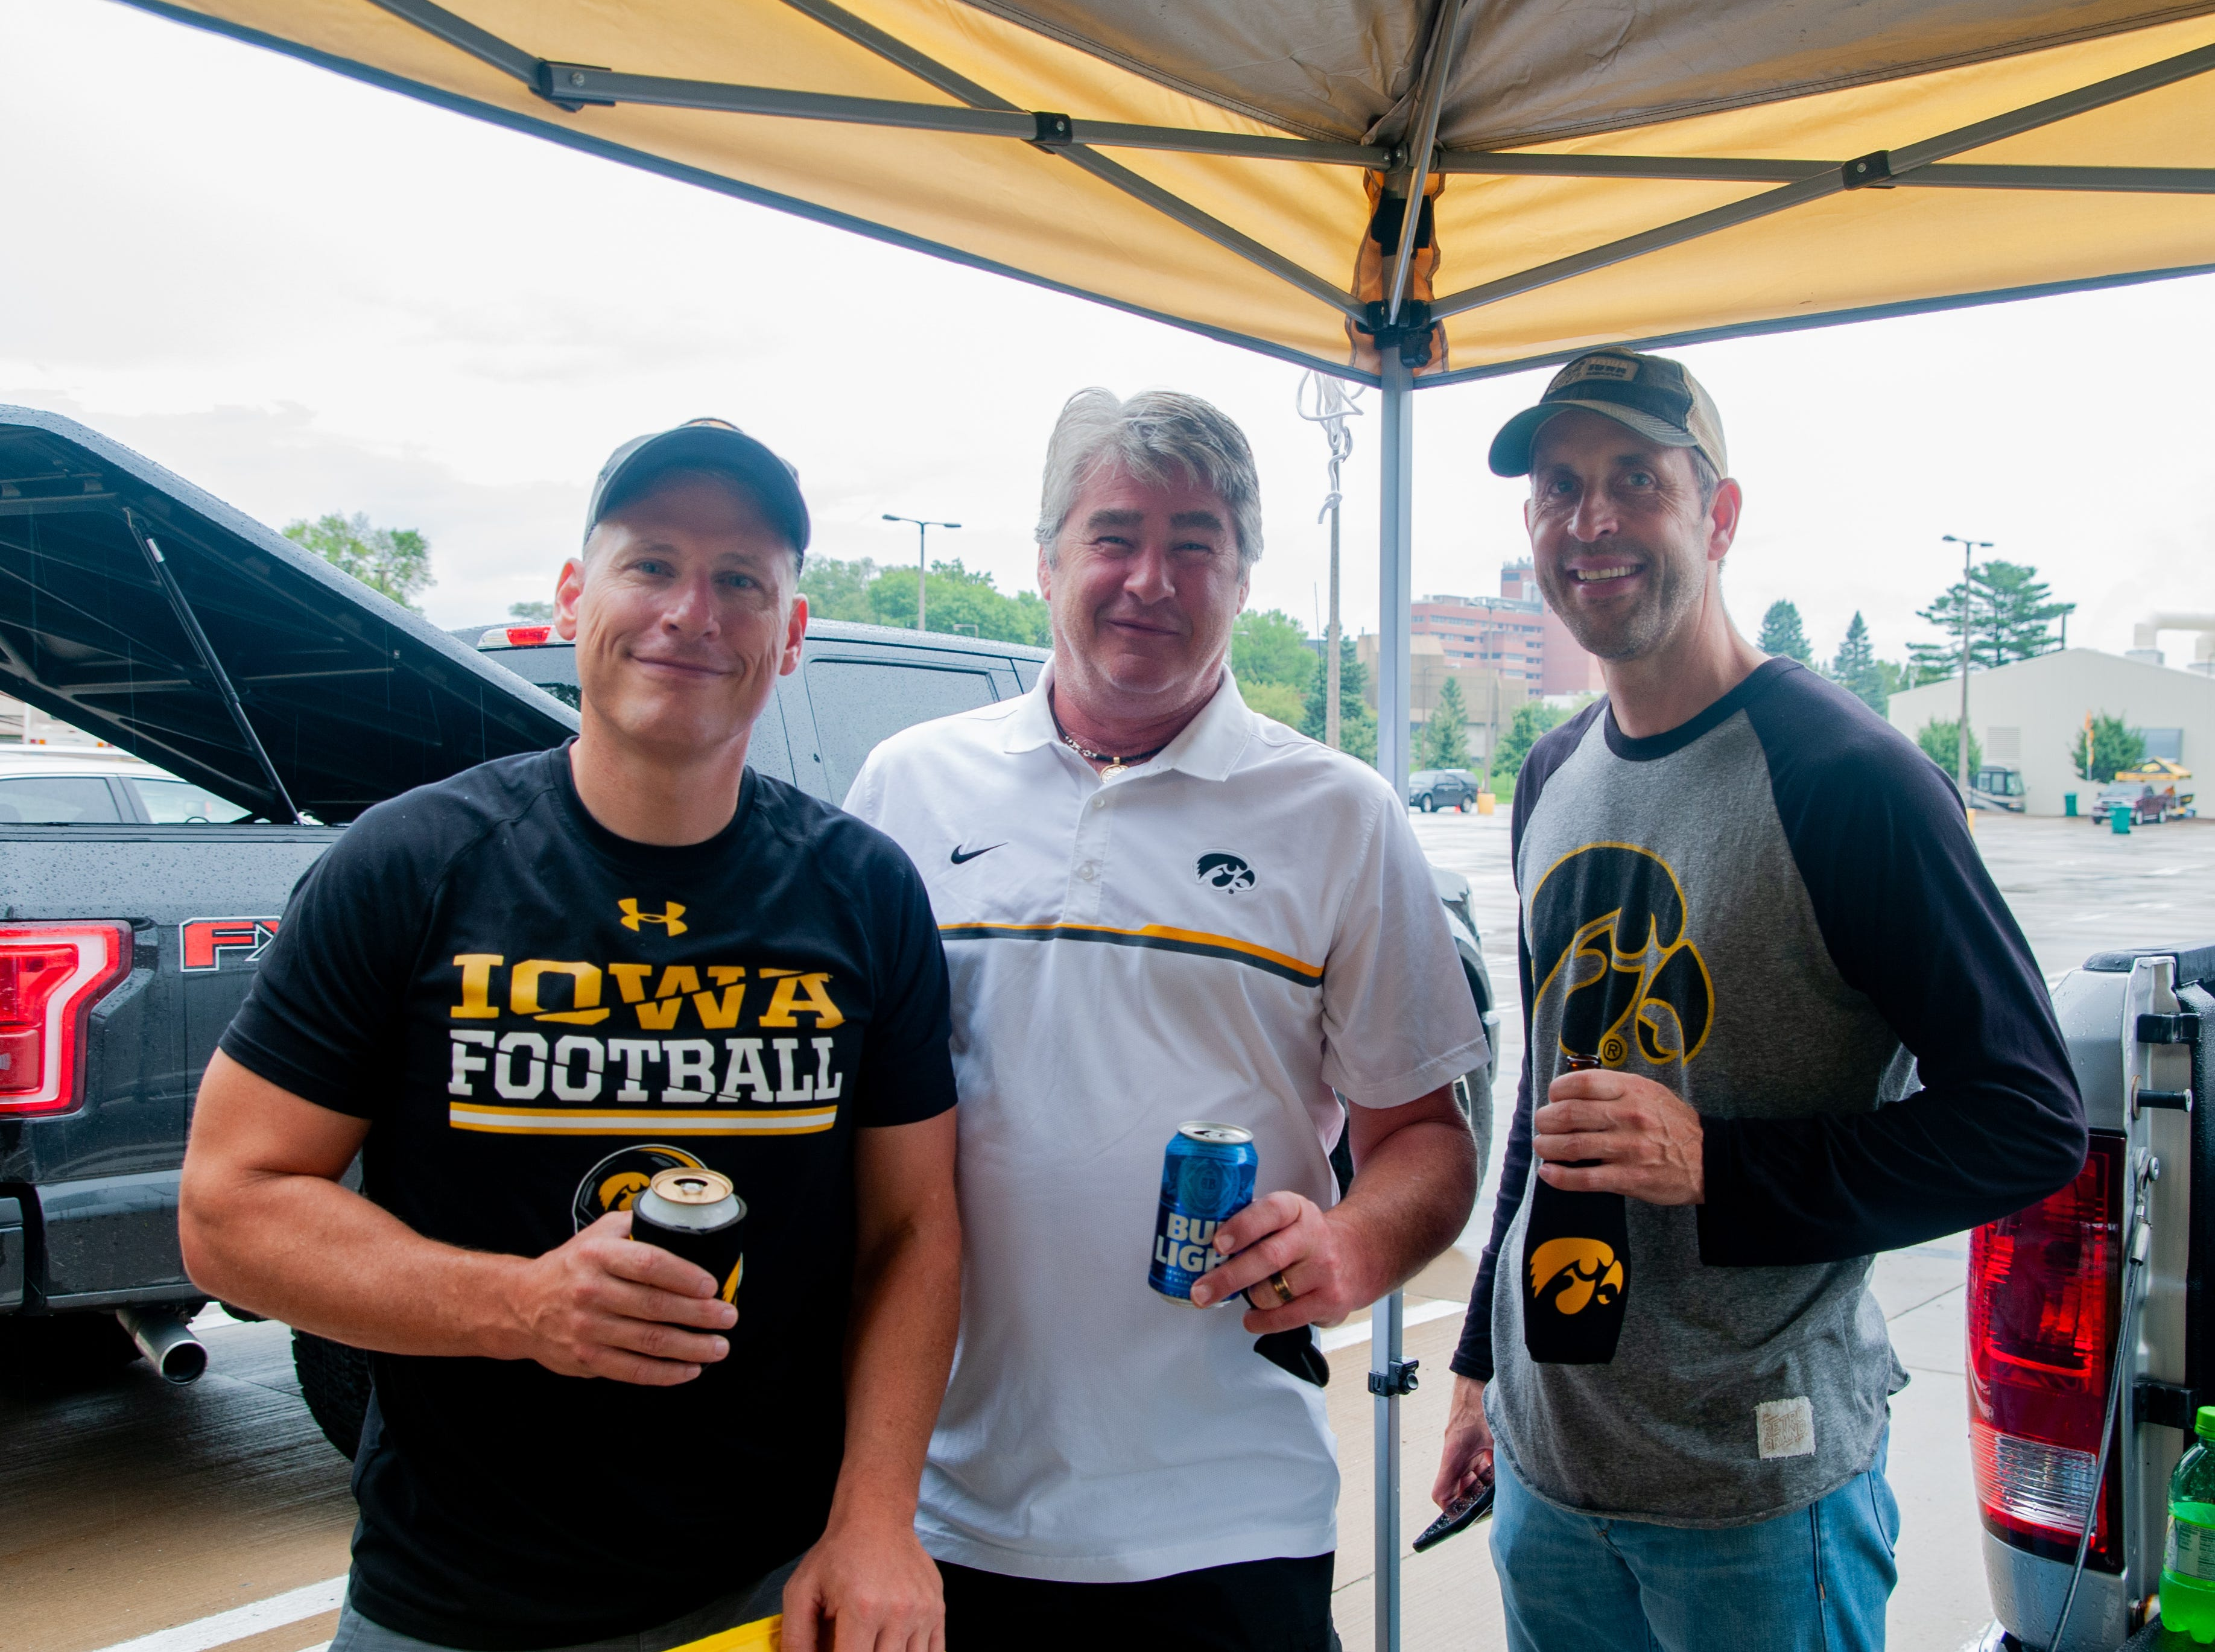 Chuck Augustine, 47, (left), Tim Tierney, 58, and John Tentinger, 46, Saturday, Sept. 1, 2018, while tailgating before the Iowa game against Northern Illinois in Iowa City.